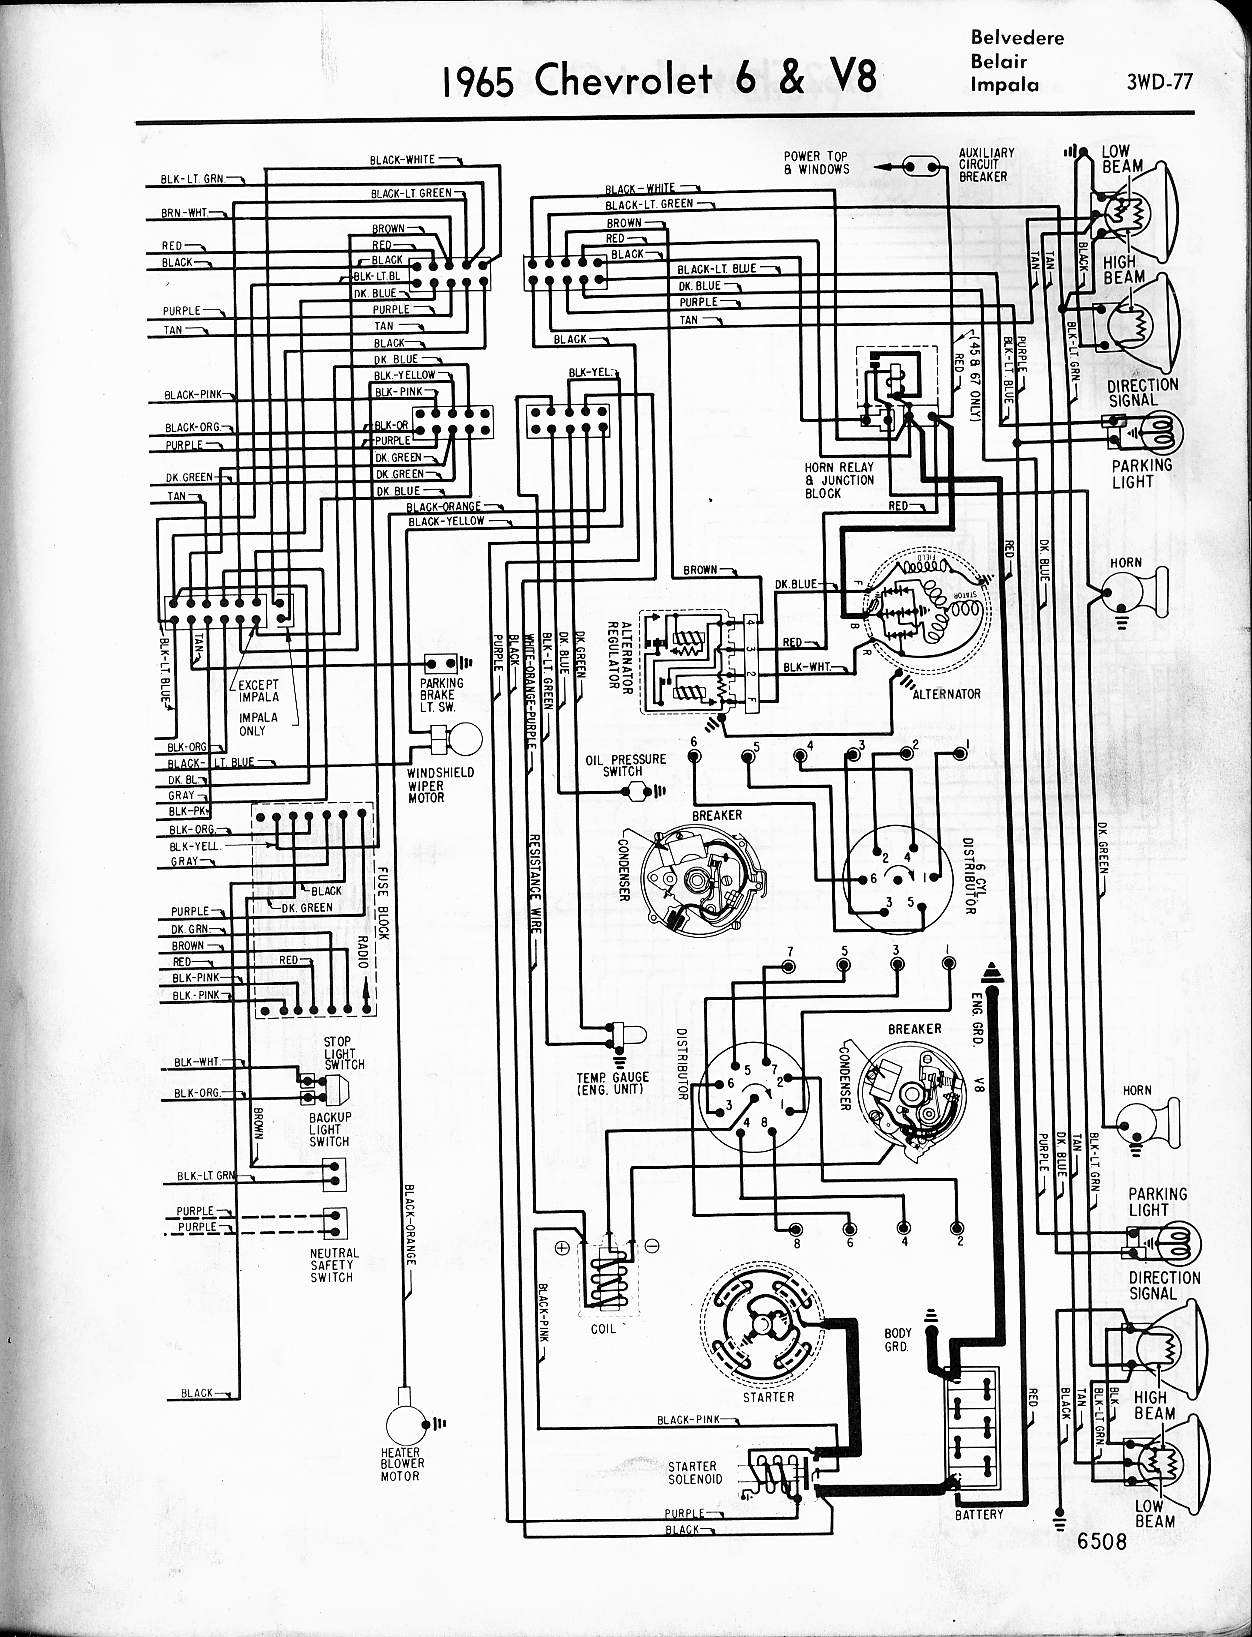 1965 chevy chevelle wiring diagram zxlmvgs chevy truck underhood wiring diagrams chuck's chevy truck pages 1985 Chevy Truck Wiring Harness at fashall.co